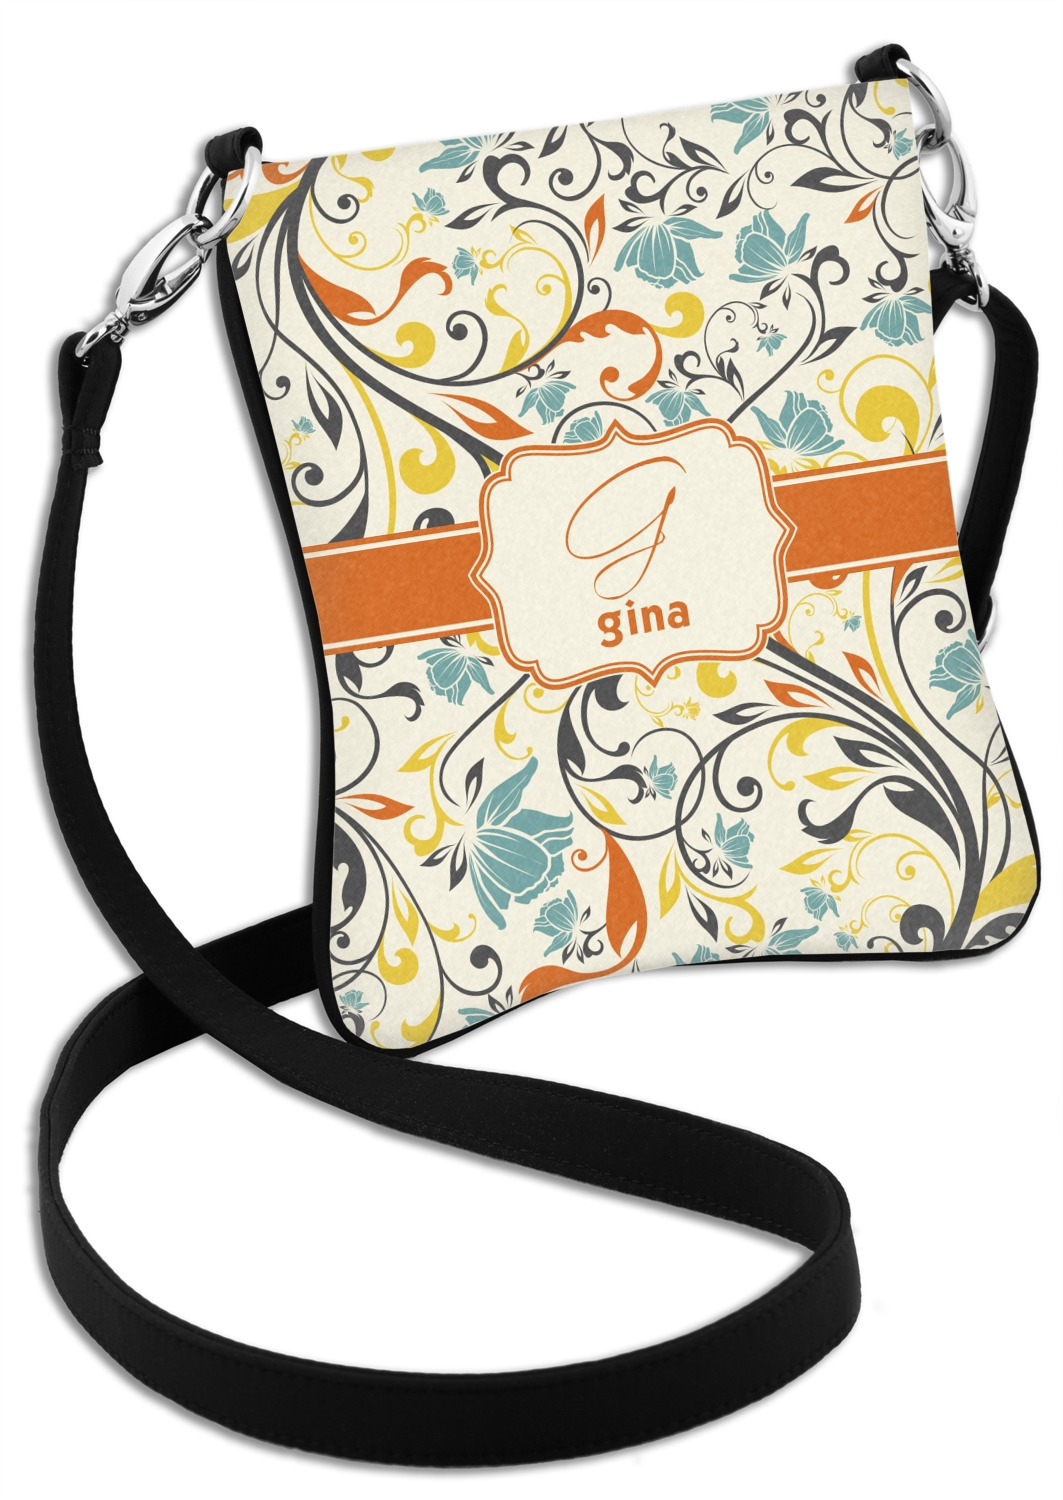 Personalized Swirly Floral Messenger Bag